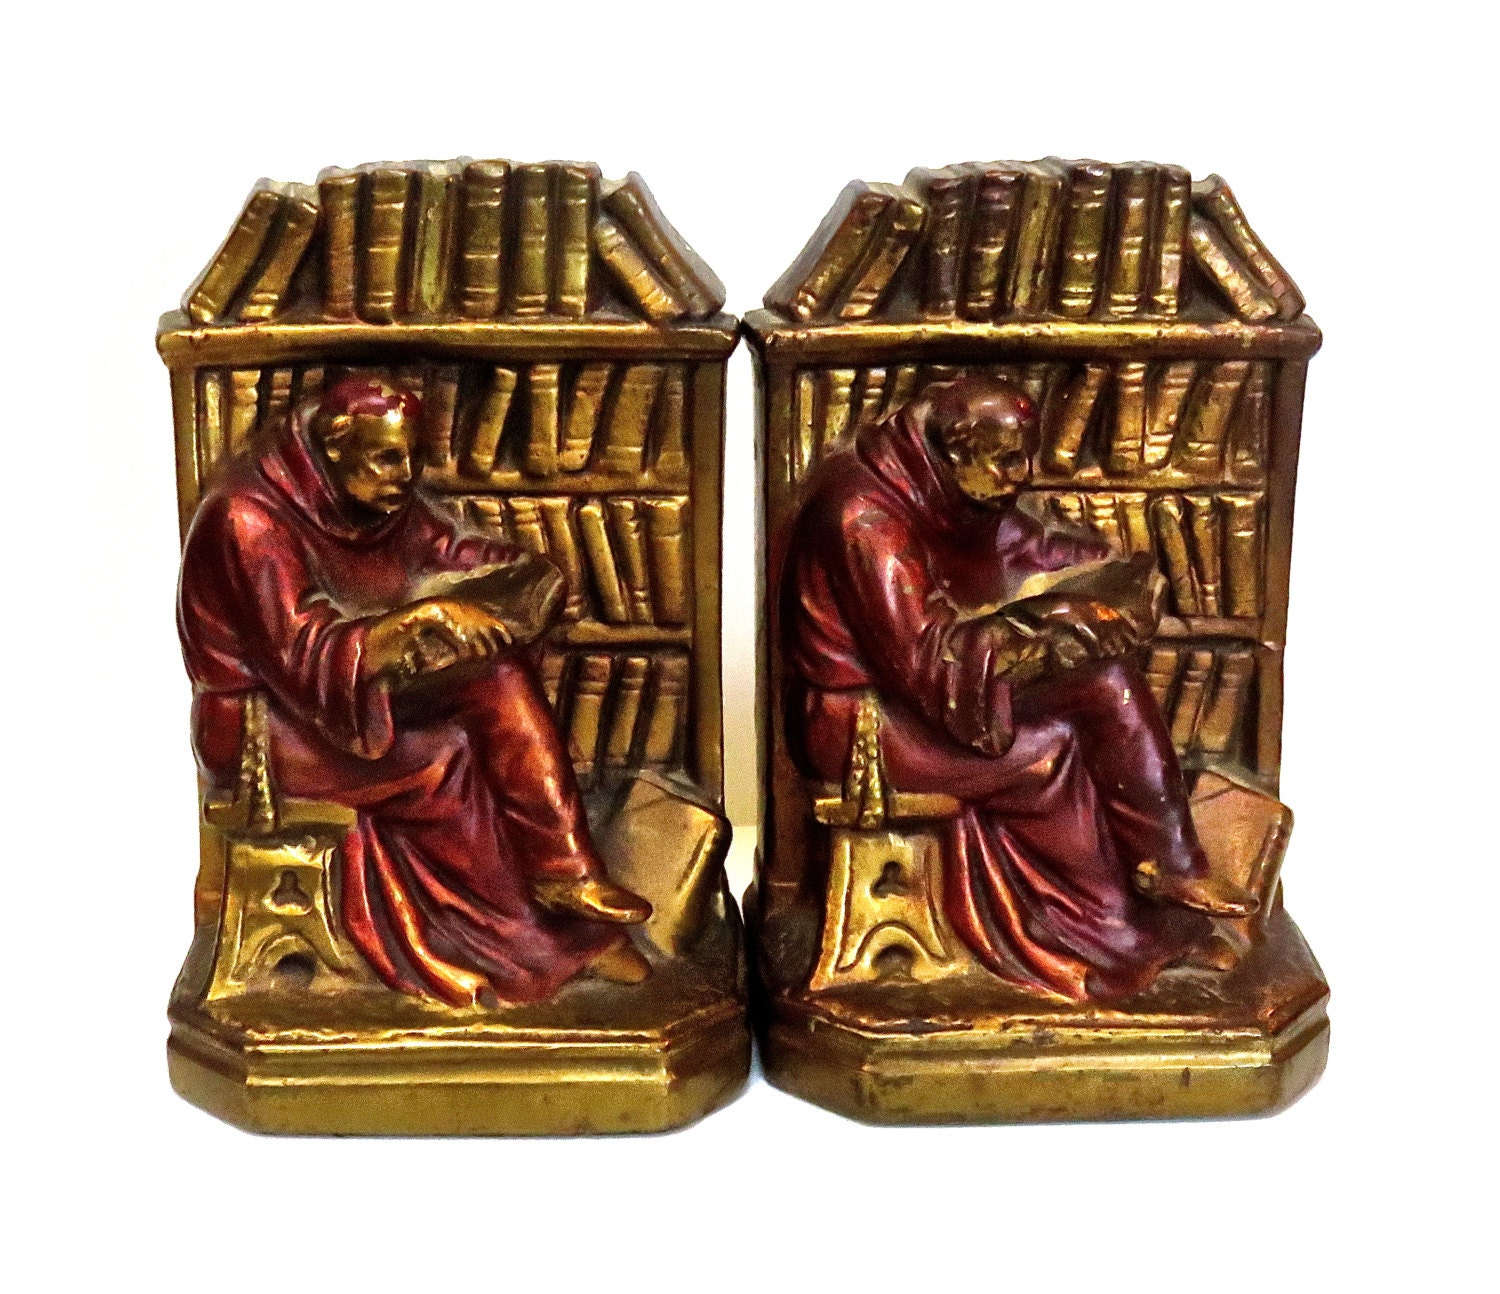 Vintage armor bronzed bookends religious monk reading in - Armor bronze bookends ...